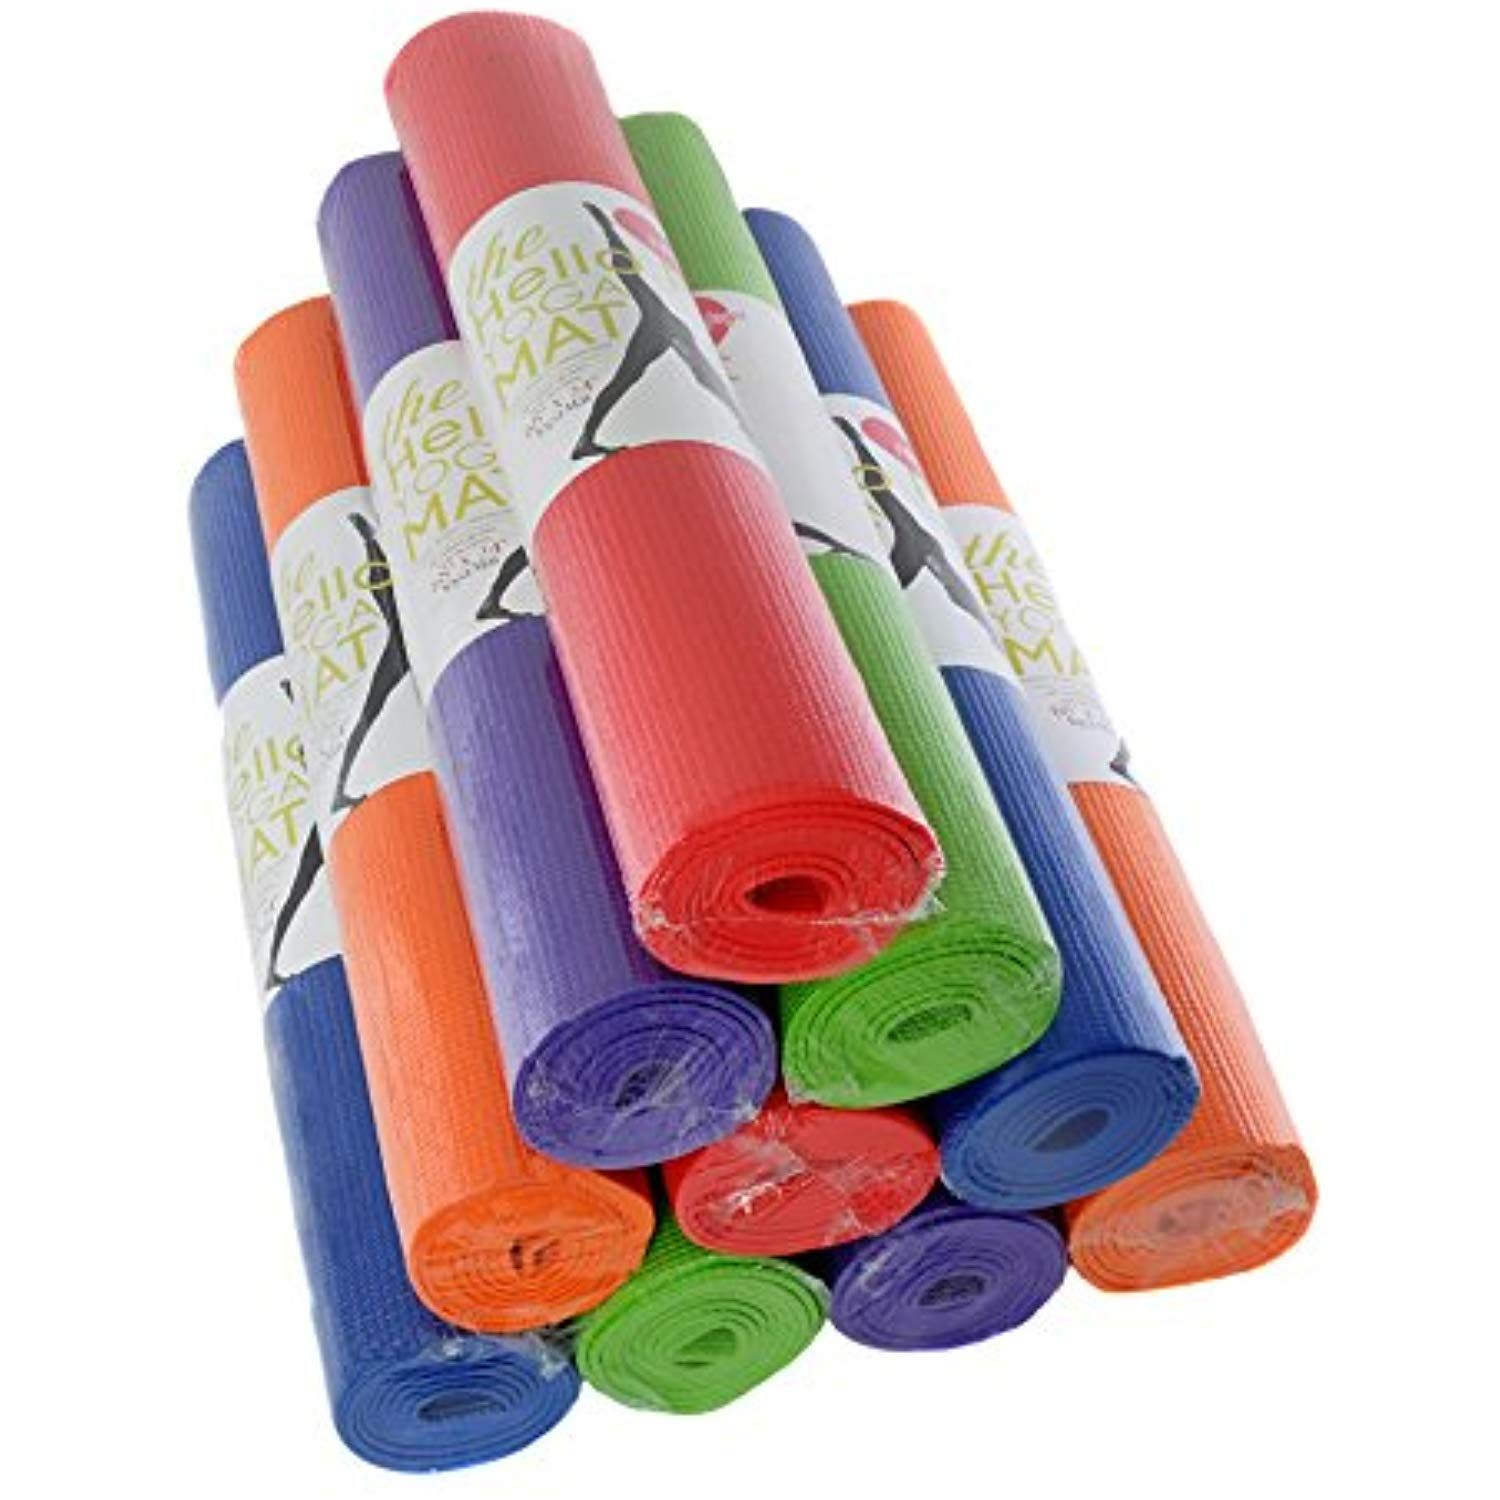 Hello Fit Yoga Mats 68 X 24 X 1 8 4mm 10 Pack Assorted Continue With The Details At The Image Link Yoga Yoga Mats Best Yoga Mat Best Yoga